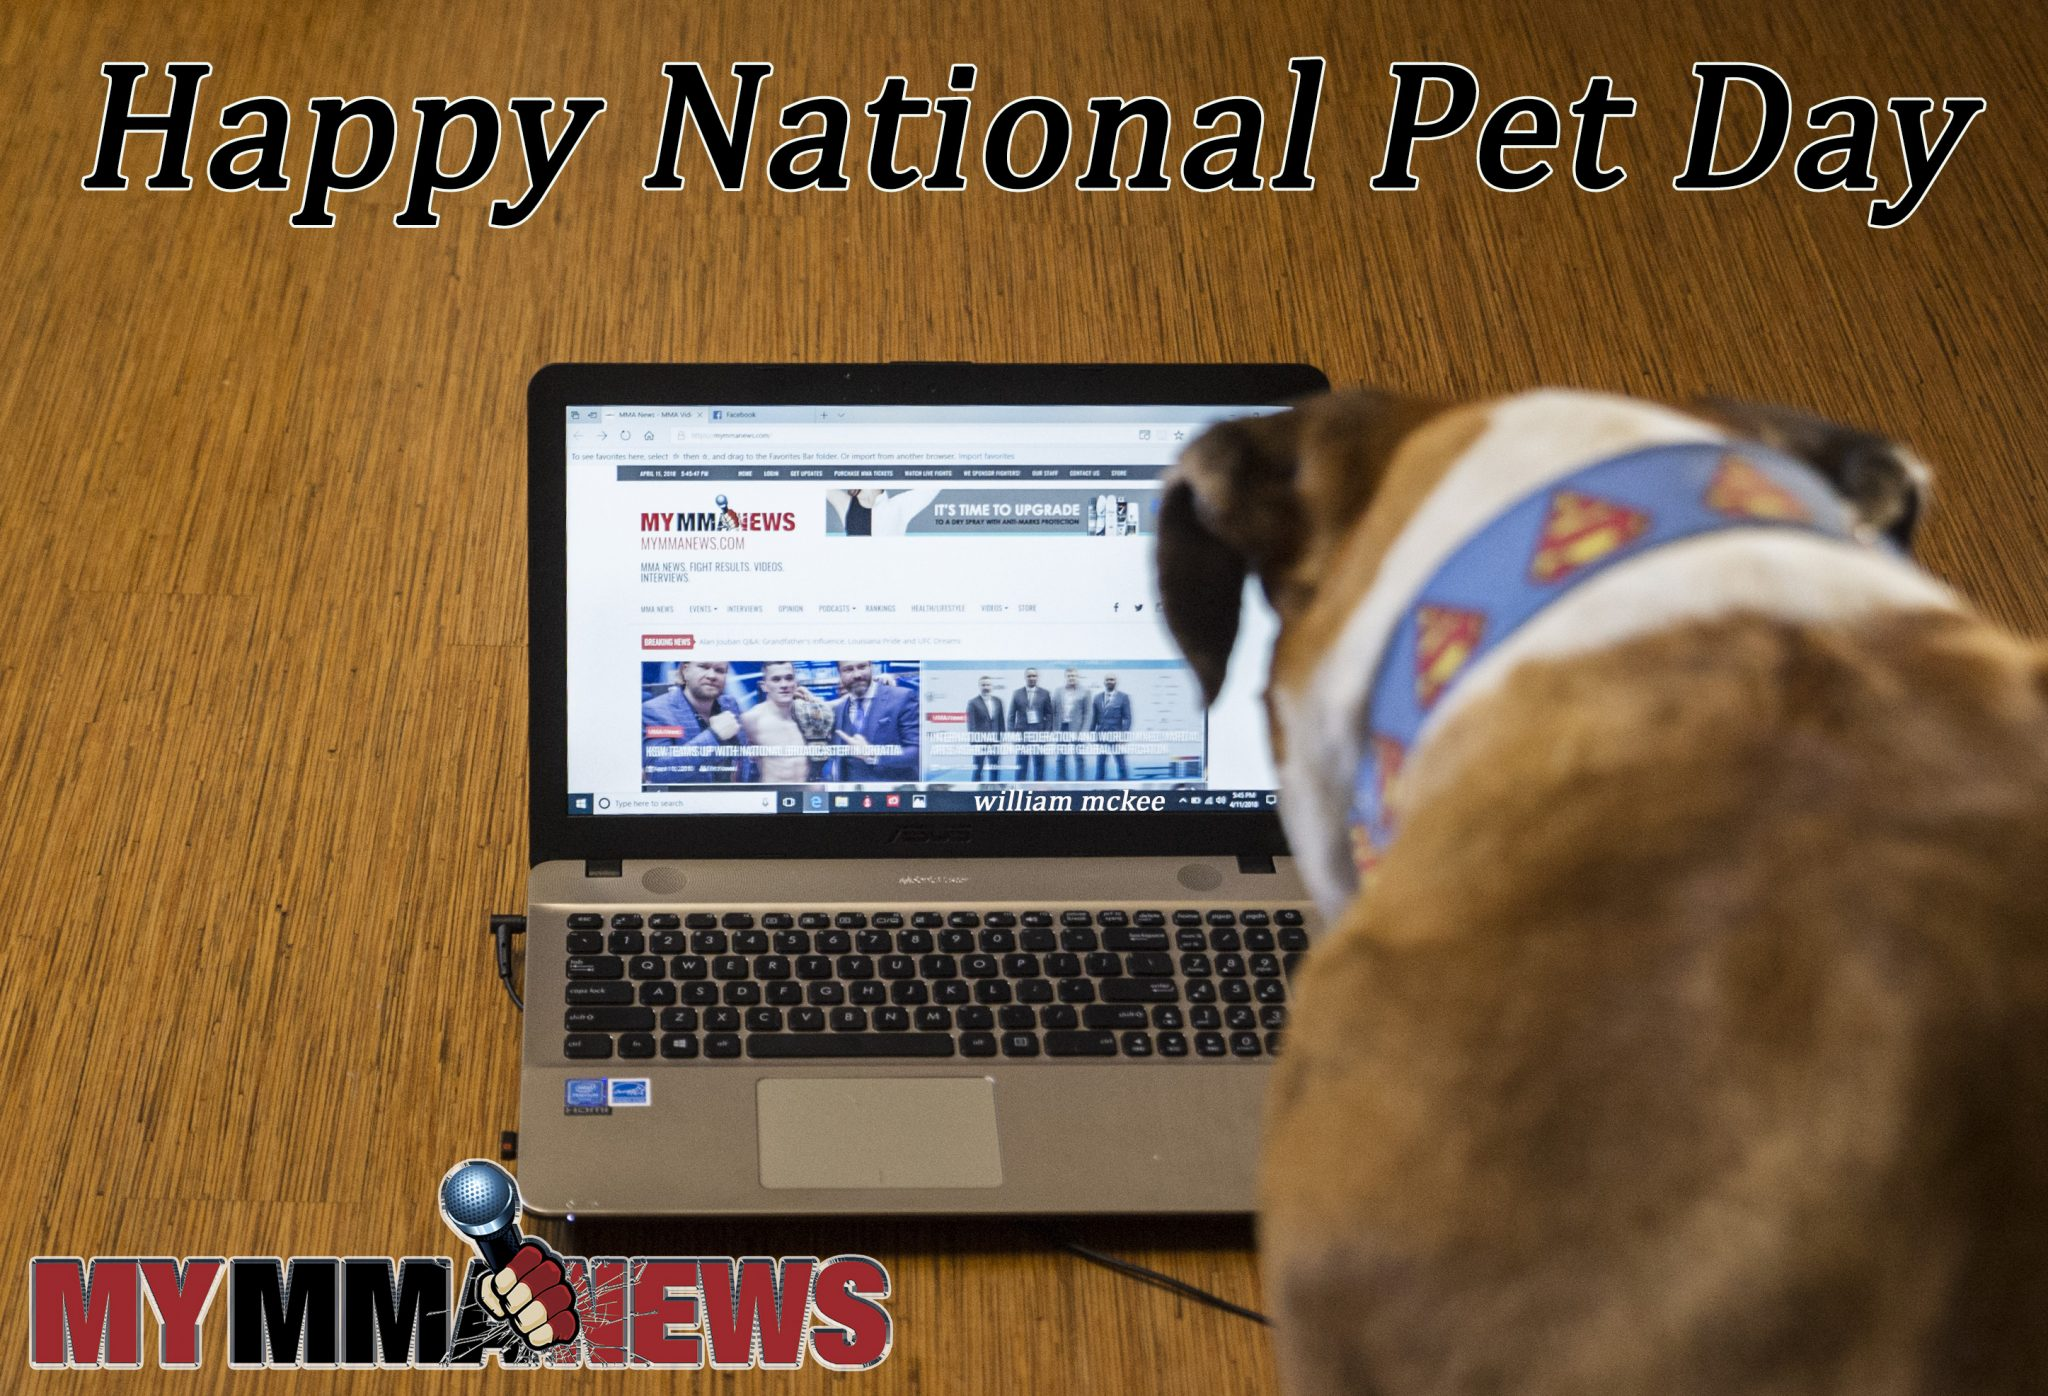 #NationalPetDay – Bust watches MyMMANews.com